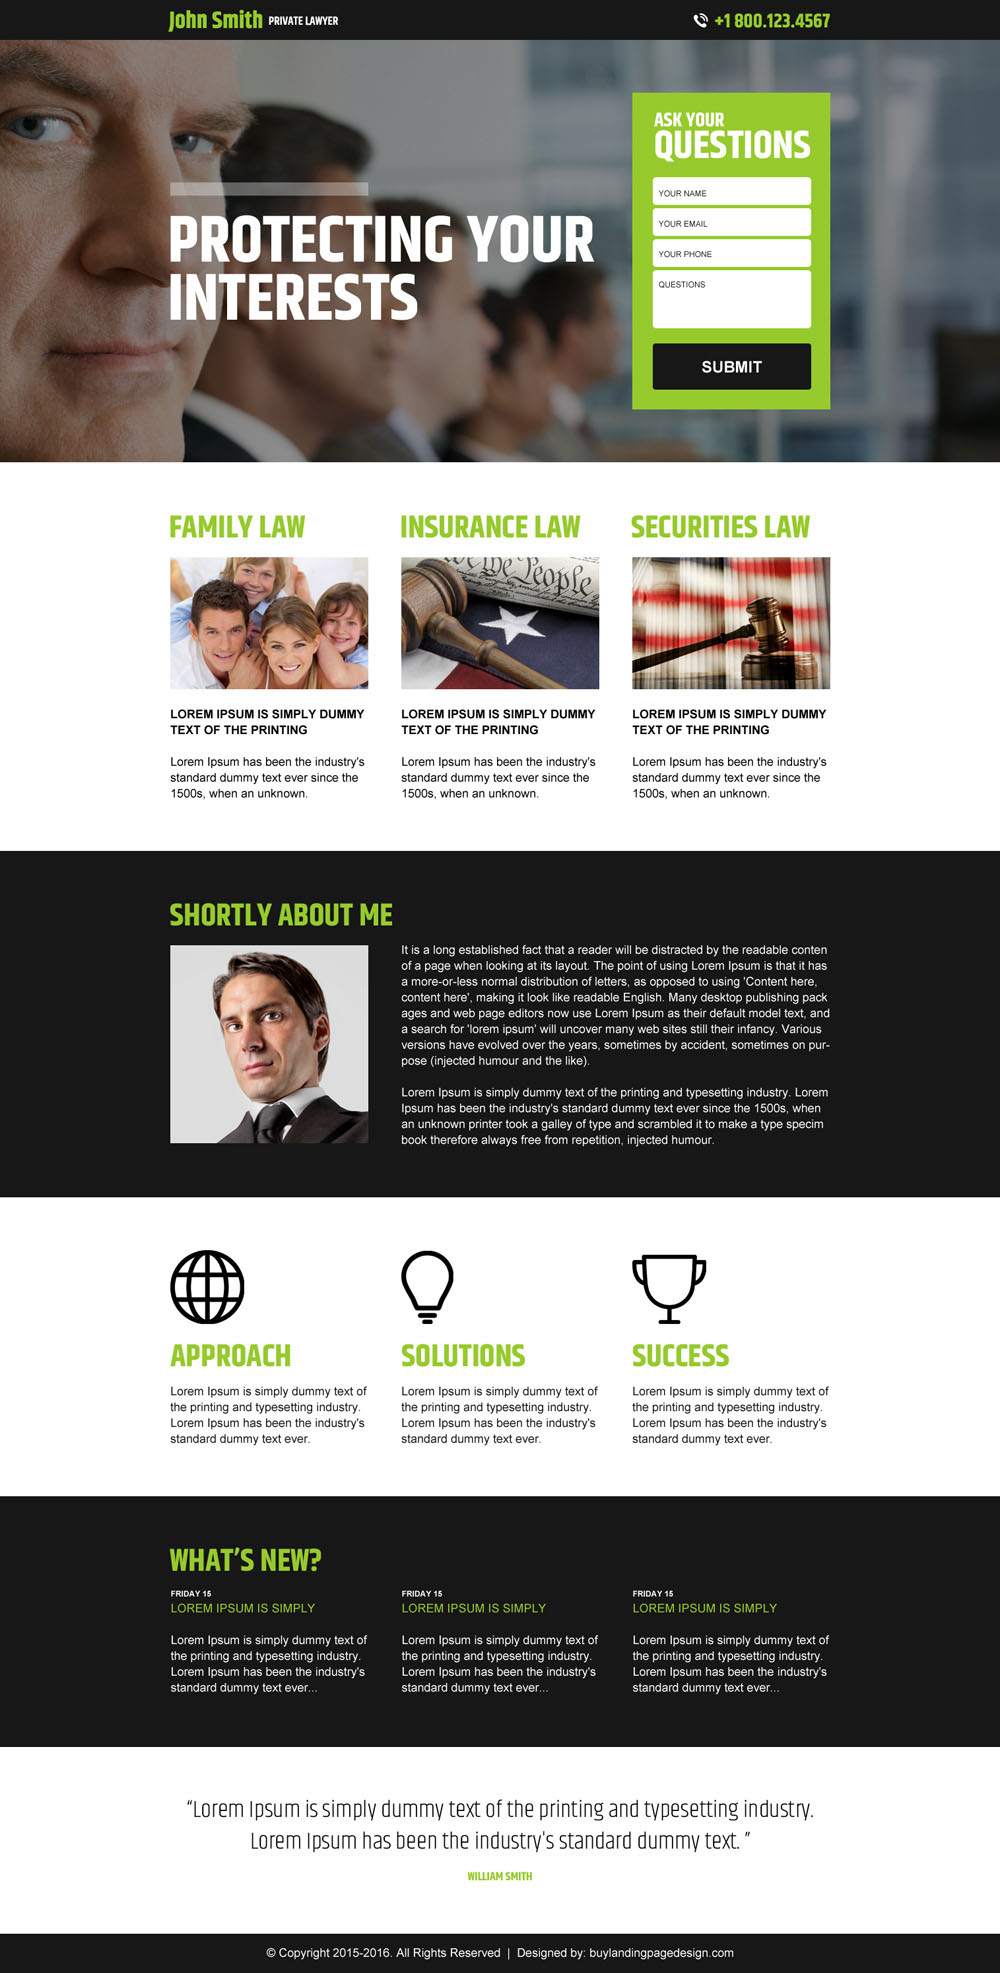 private-lawyer-lead-generation-best-converting-responsive-landing-page-design-005